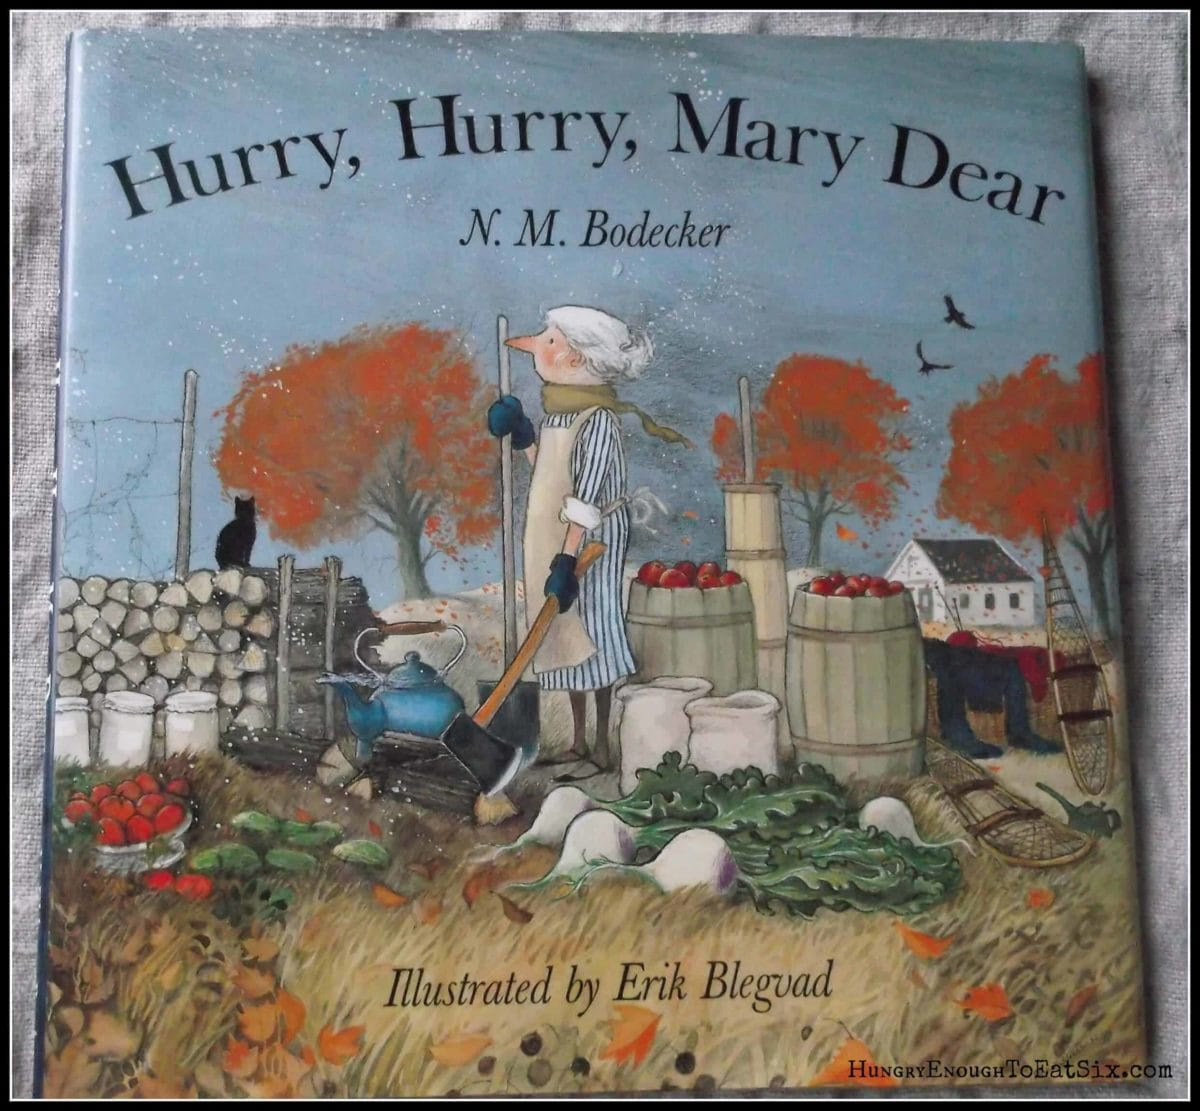 Children's book cover with fall trees, apples, and an old woman